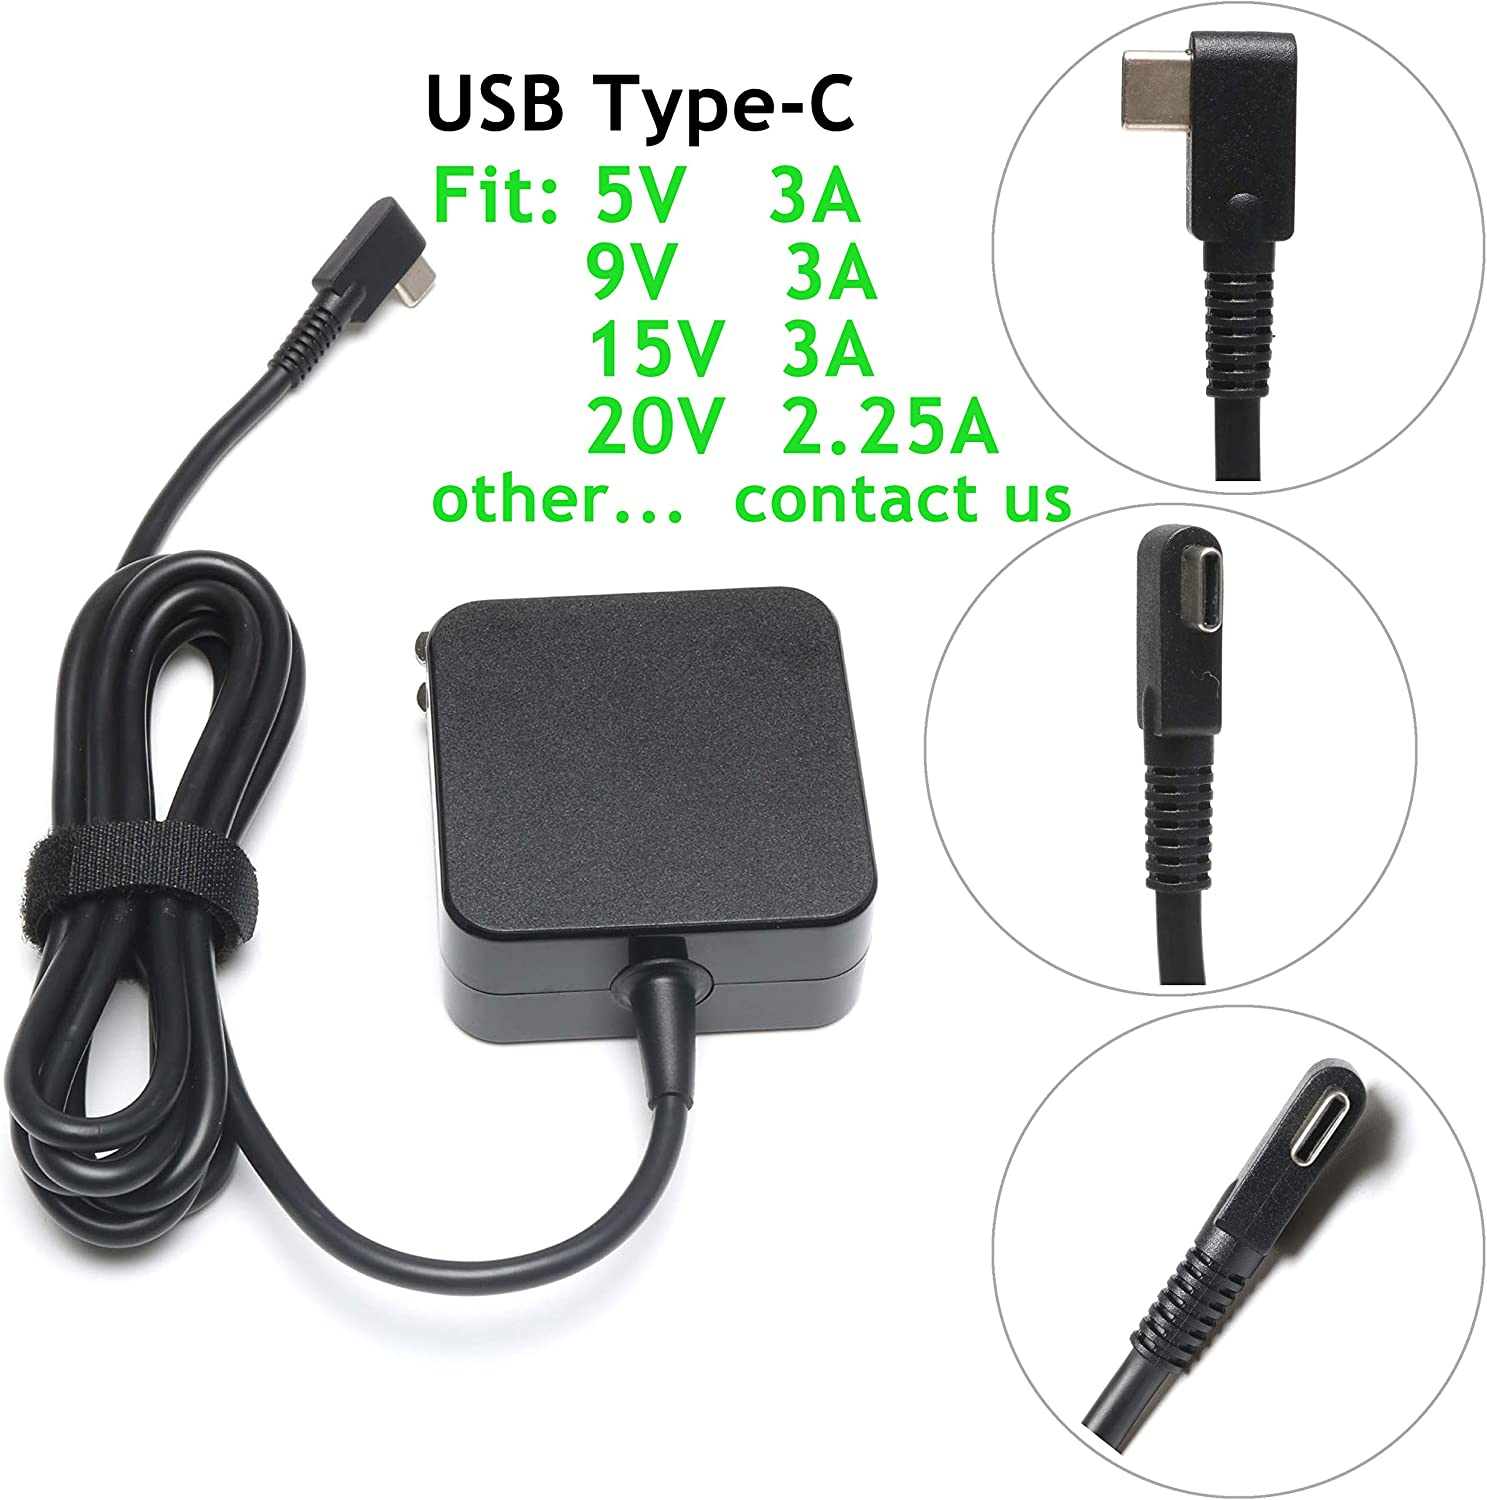 45W USB Type C AC Charger for HP Spectre x360 13 TPN-CA01;Lenovo Yoga 720 910 720-13IKB 910-13IKB;IdeaPad 720s;Miix 720-12ikb;Thinkpad X1 Tablet Yoga 5 Pro GX20M33579 Laptop Power Adapter Supply Cord